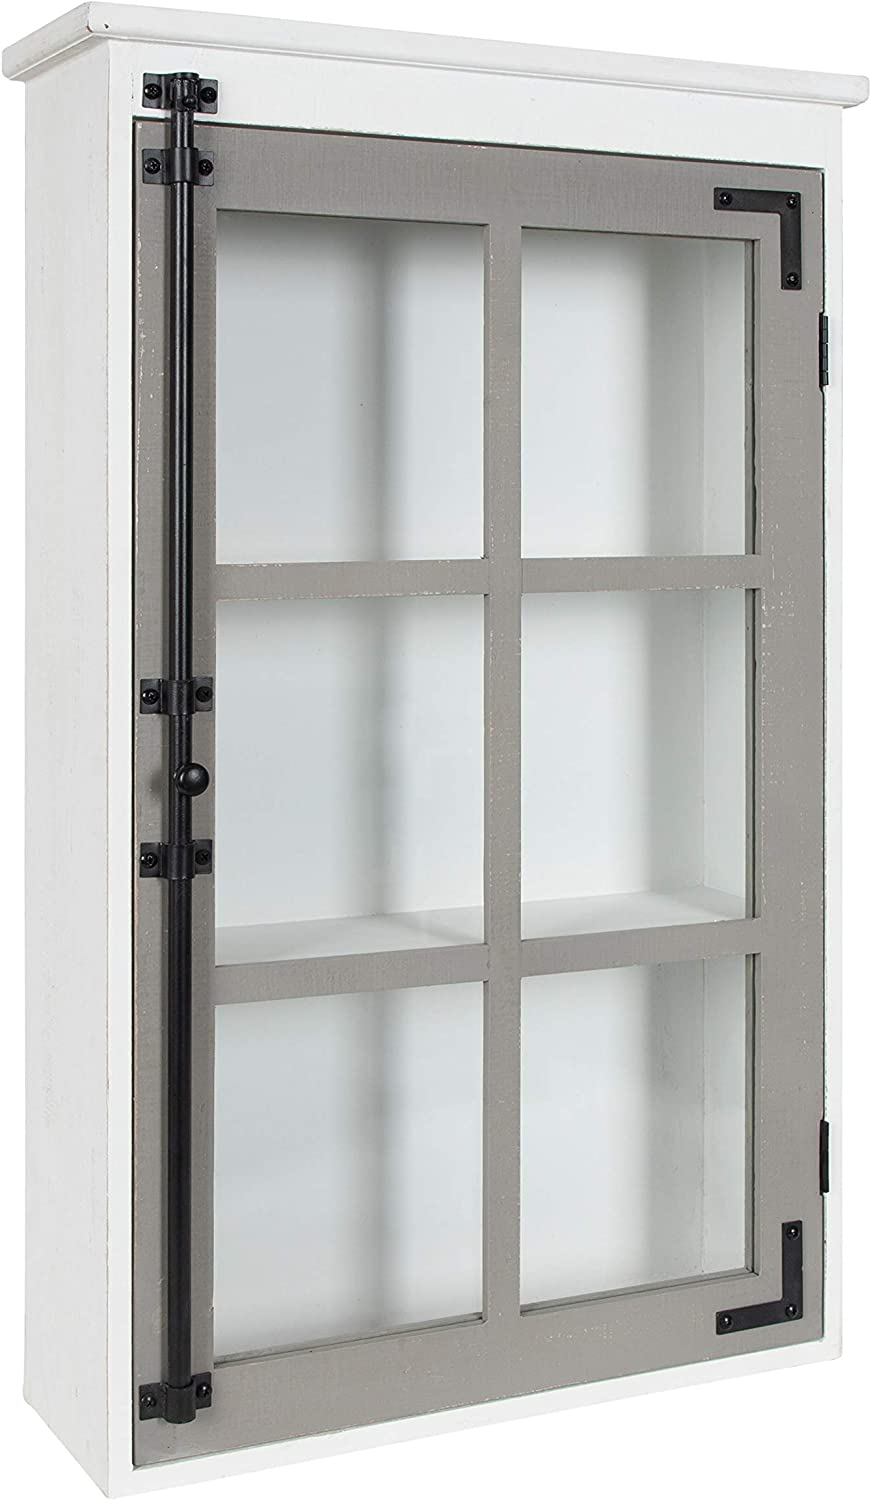 """Kate and Laurel Hutchins Rustic Wall Cabinet, 19.5"""" x 6"""" x 31.5"""", White and Gray, Farmhouse Cabinet with Glass Door"""